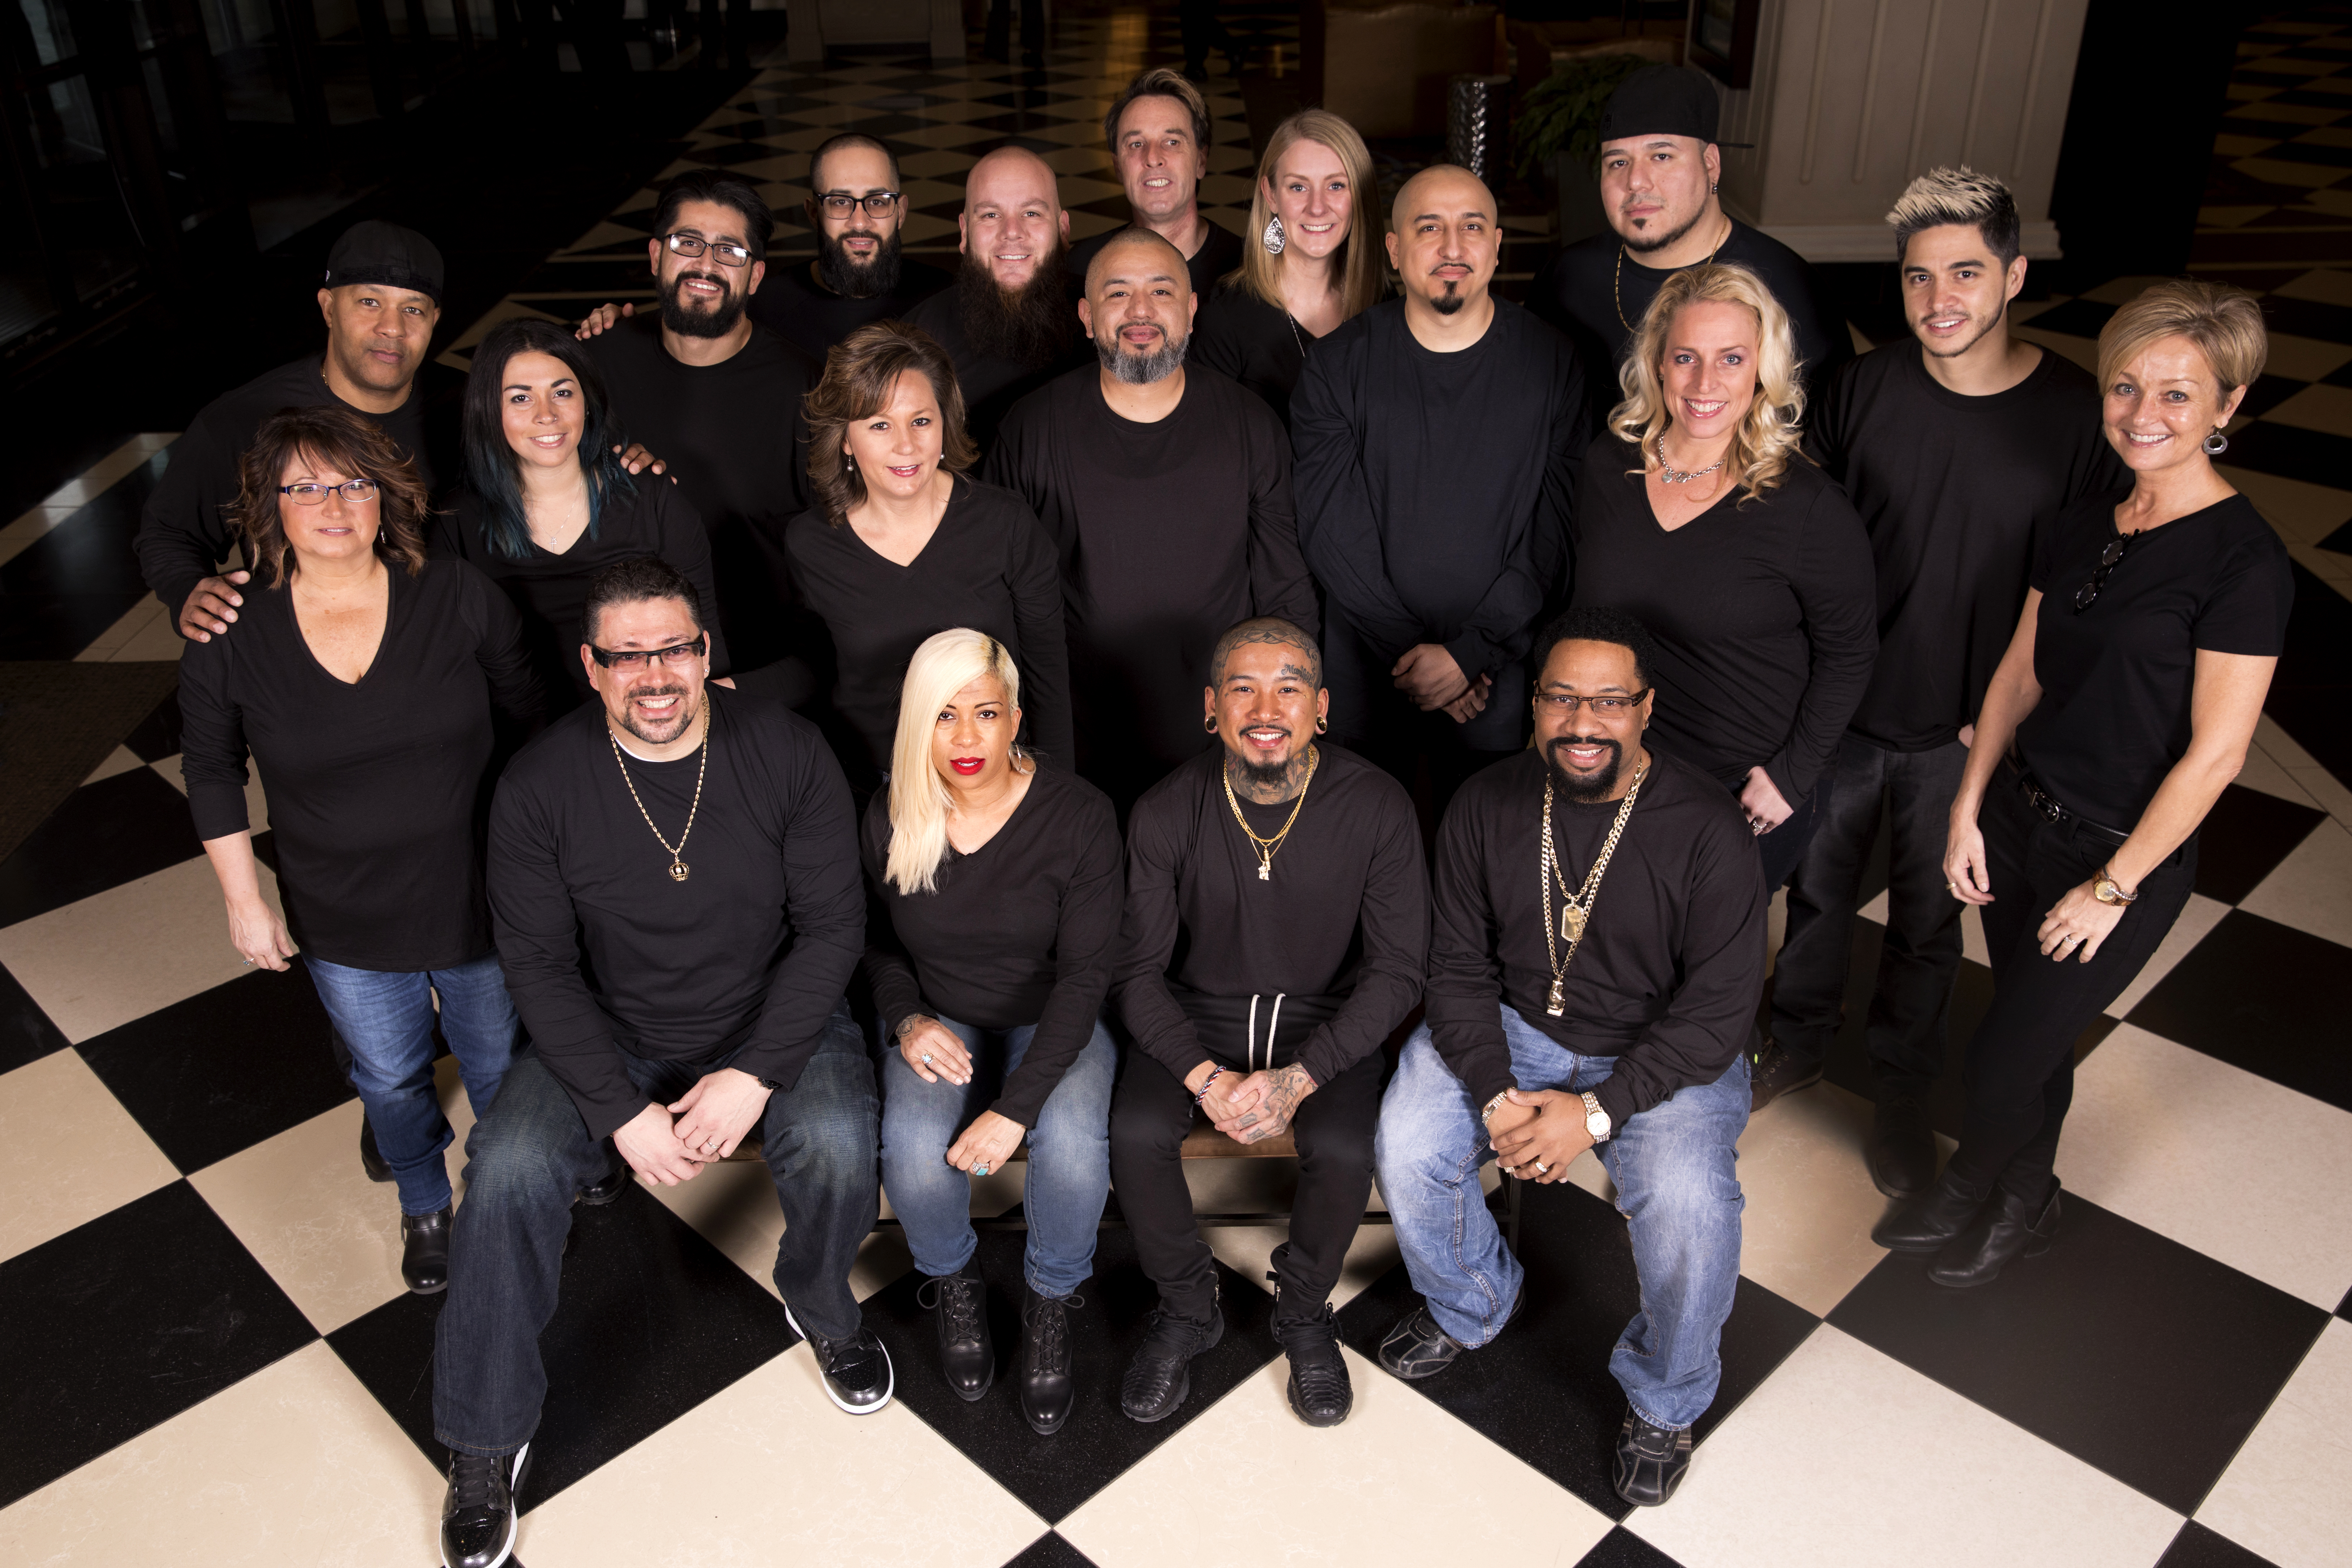 Members of the Wahl Education and Artistic Team (W.E.A.T.) will lead the continuing education classes.